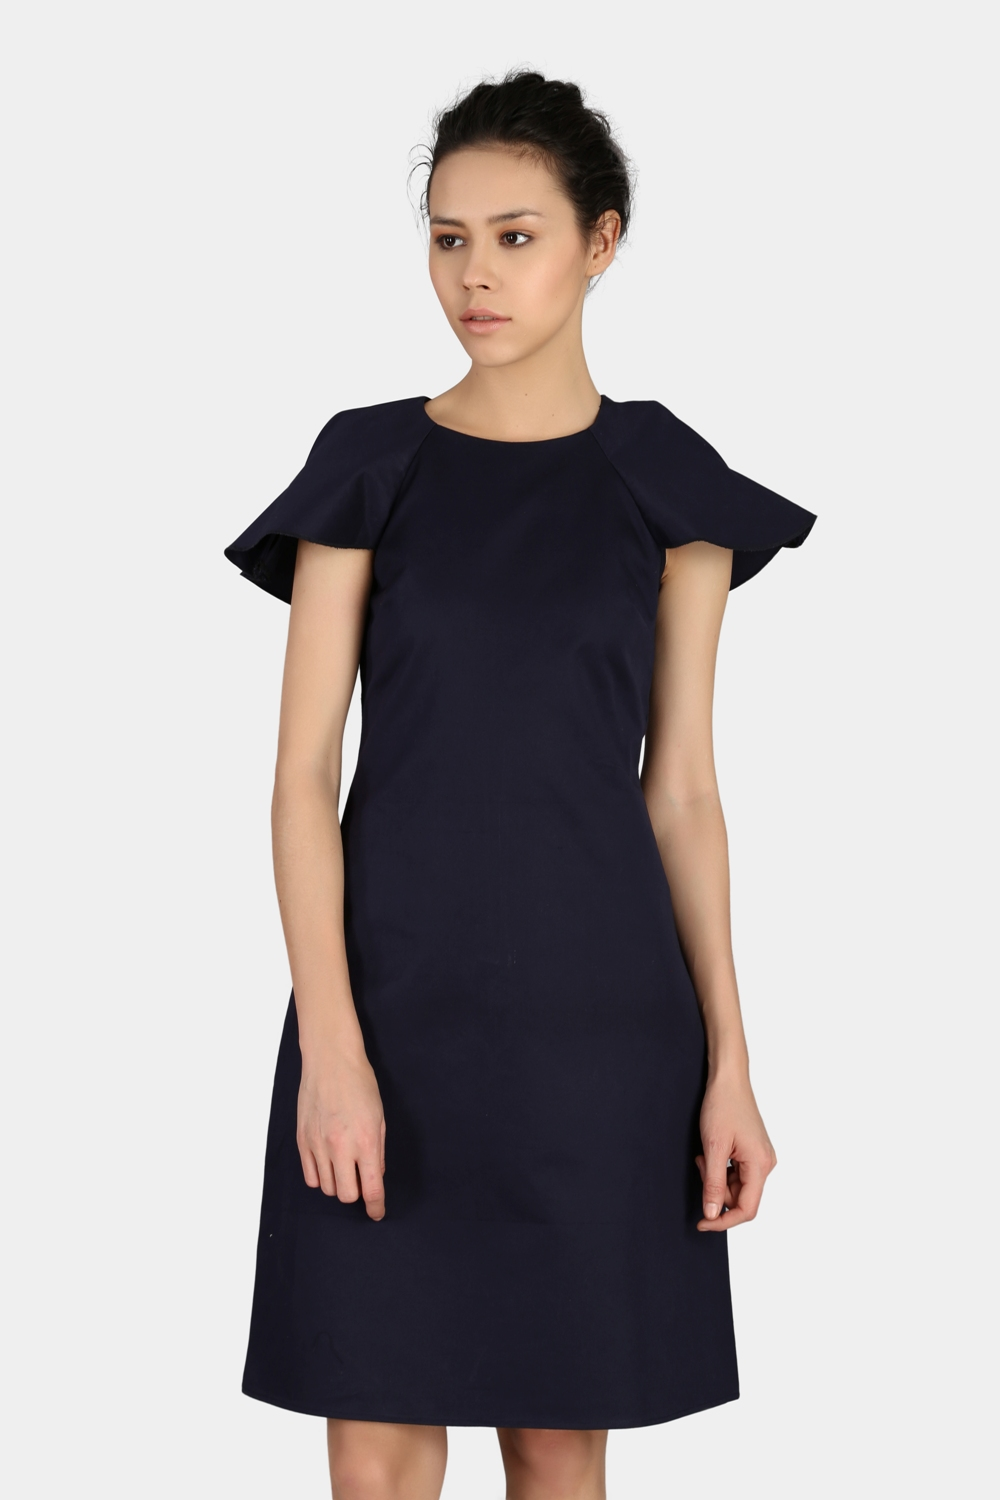 Navy Blue Relaxed Work Wear Dress -0